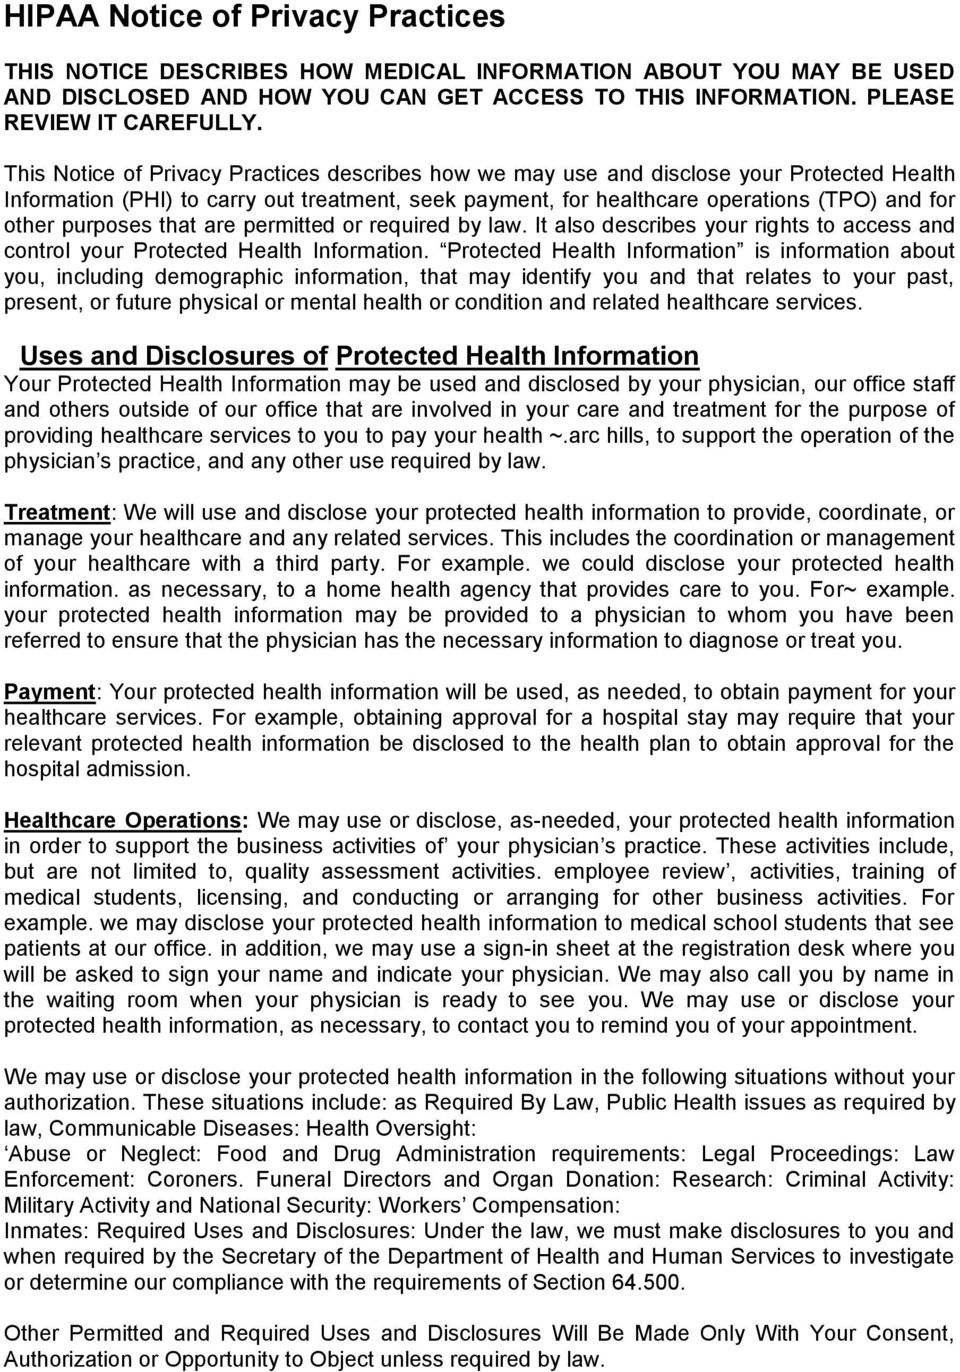 Hipaa Notice Of Privacy Practices Pdf 2021 Template